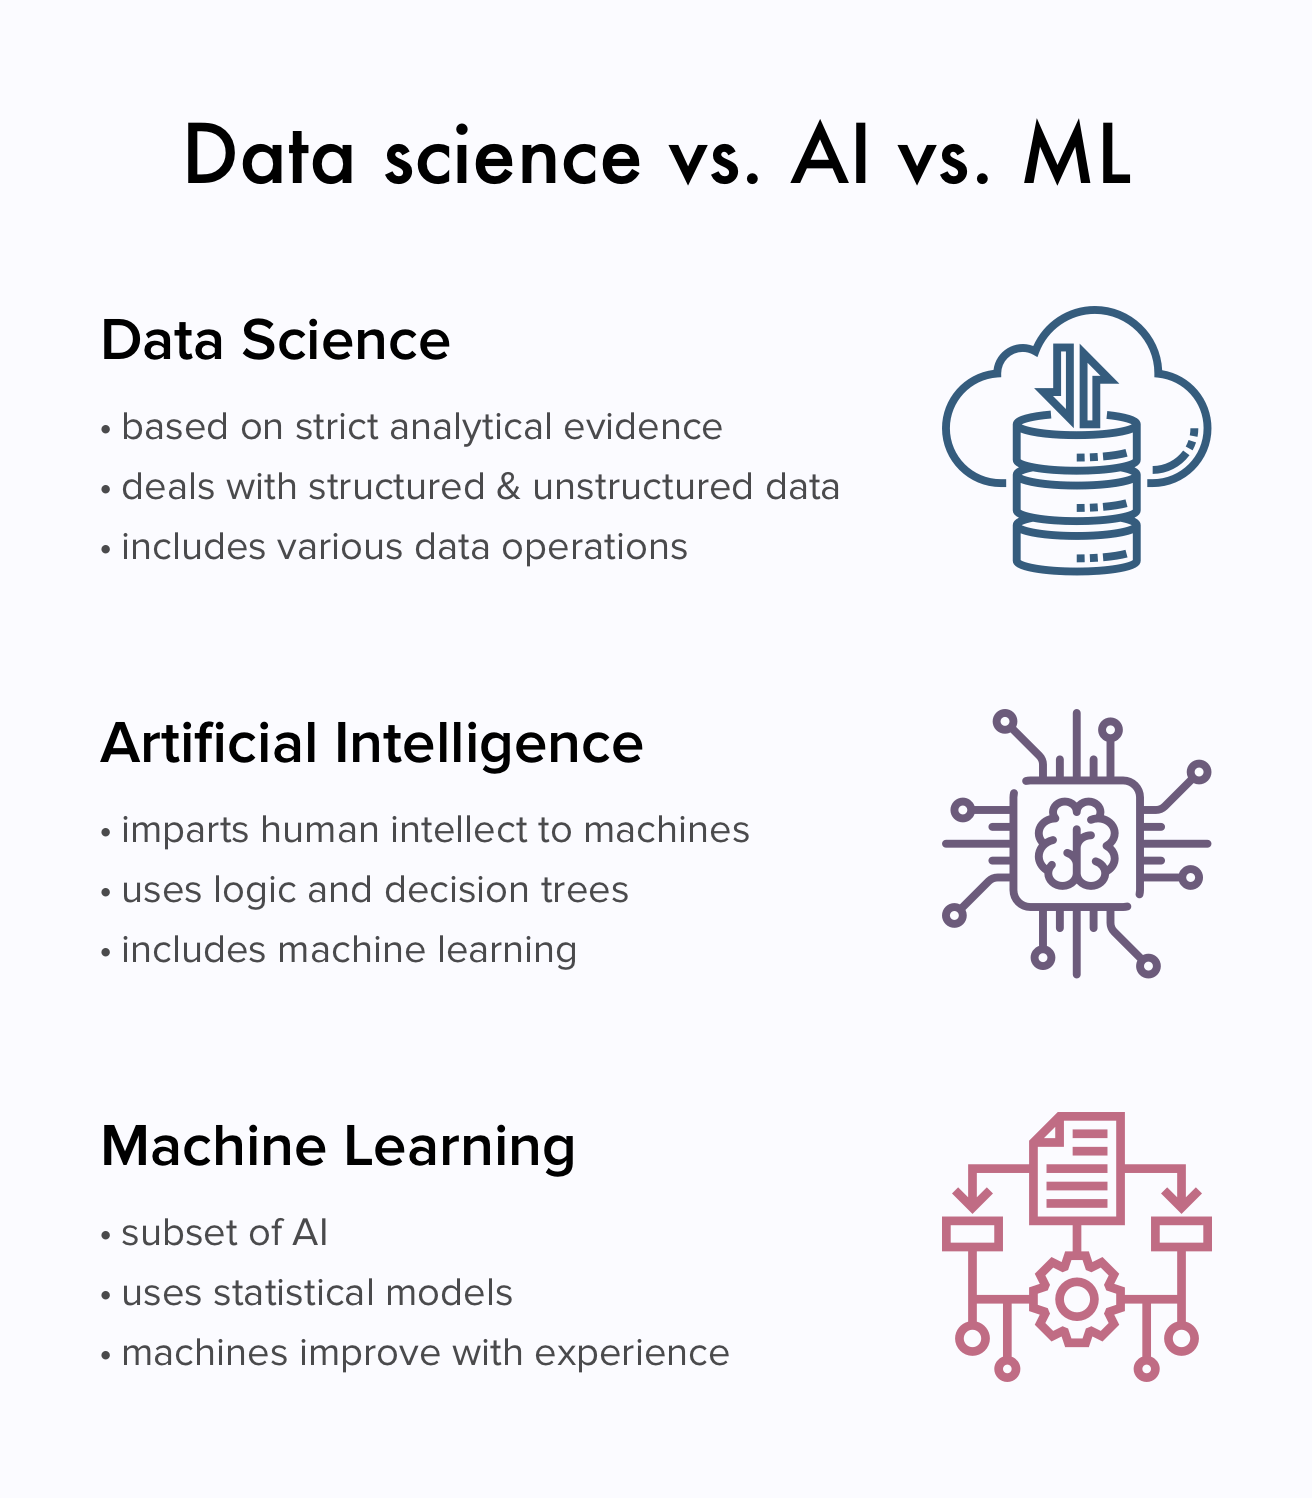 Data science vs ML vs AI